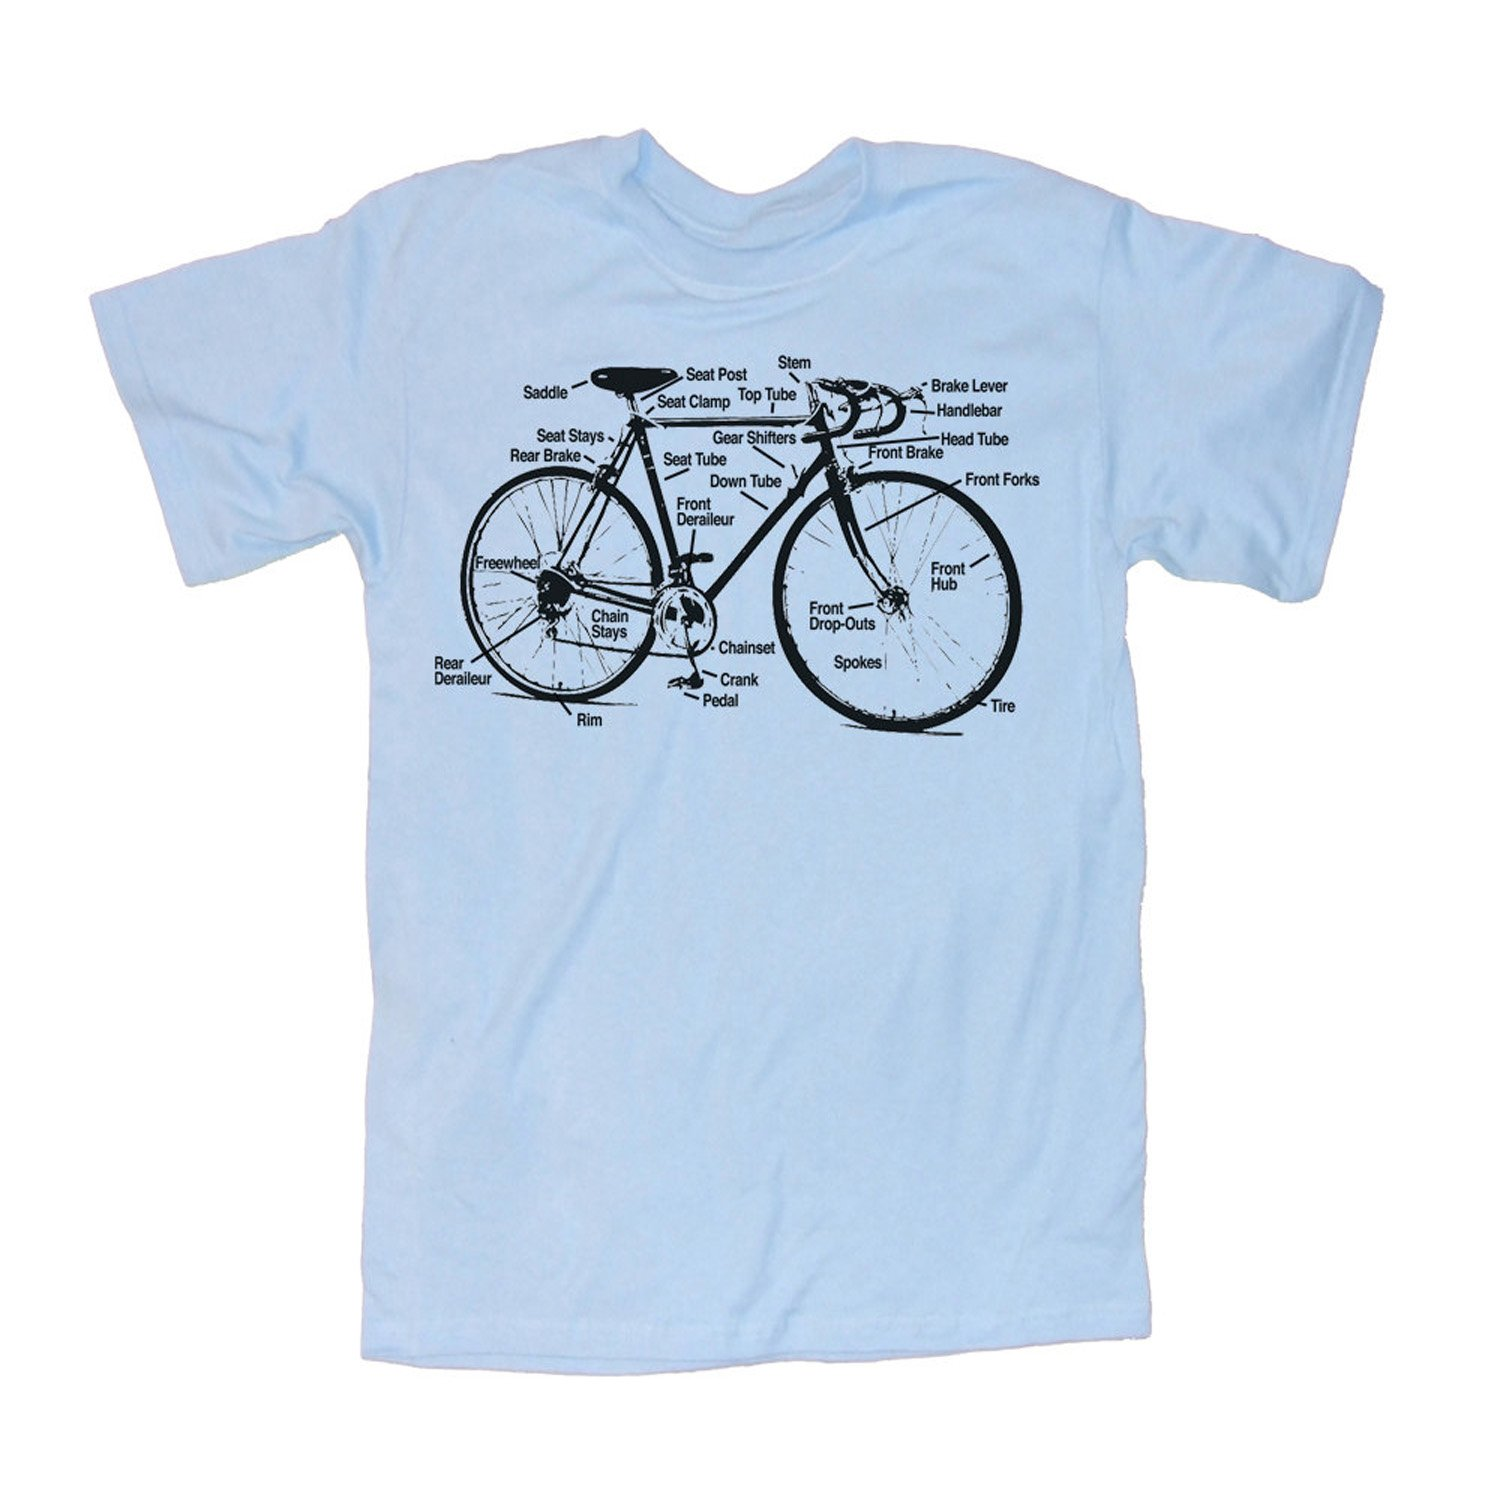 71a6iIlGycL._UL1500_ amazon com happy family retro racing bike diagram mens t shirt shirt diagram at gsmportal.co